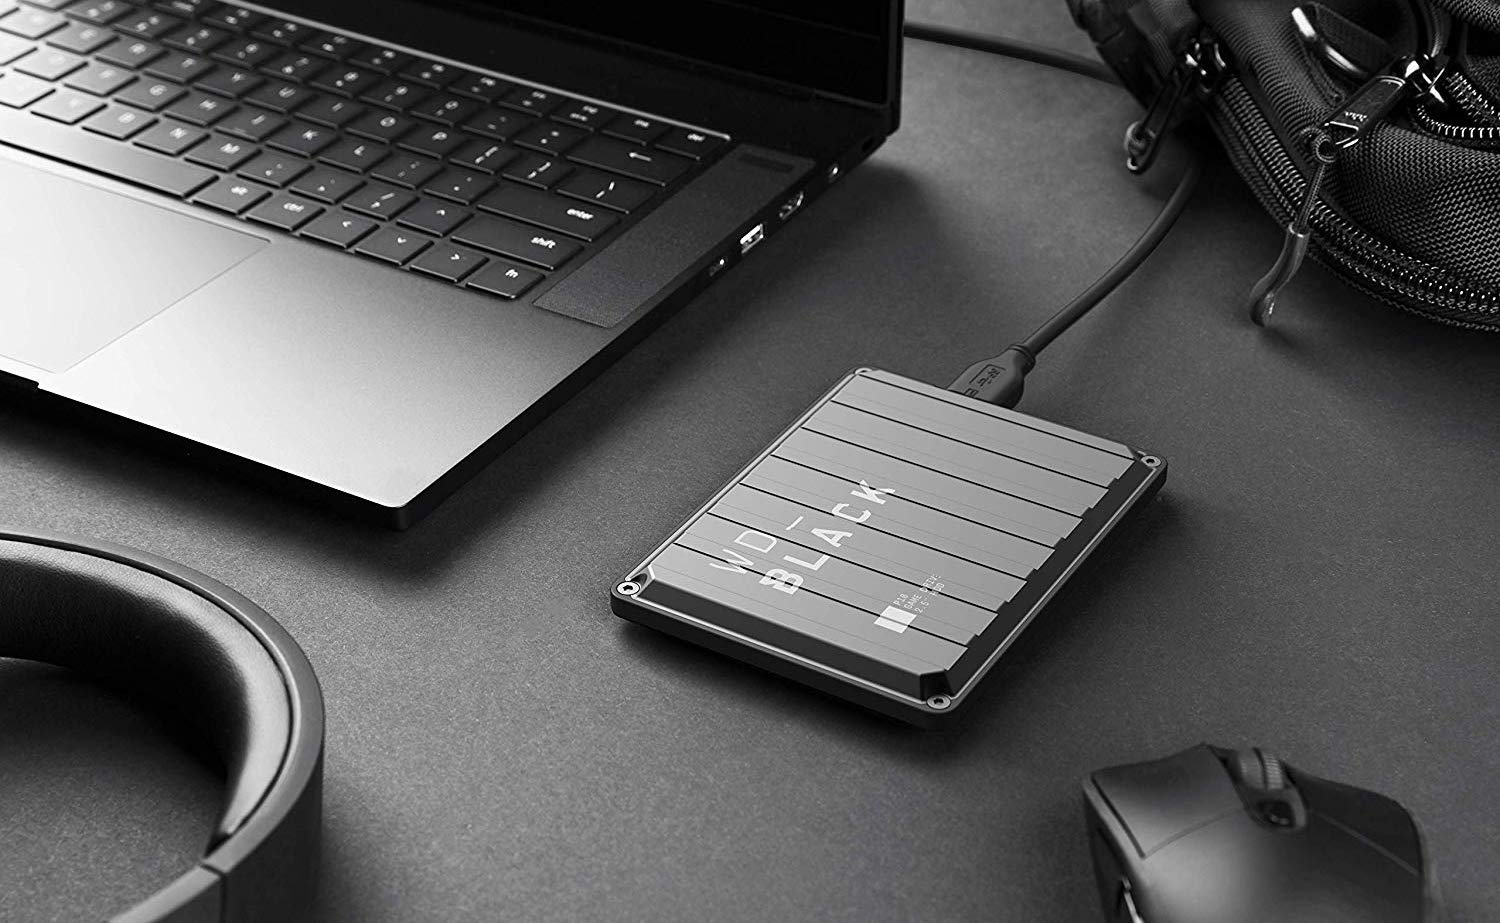 Western Digital WD_BLACK P10 Game Drive External HDD provides 140 MBps transfer speed